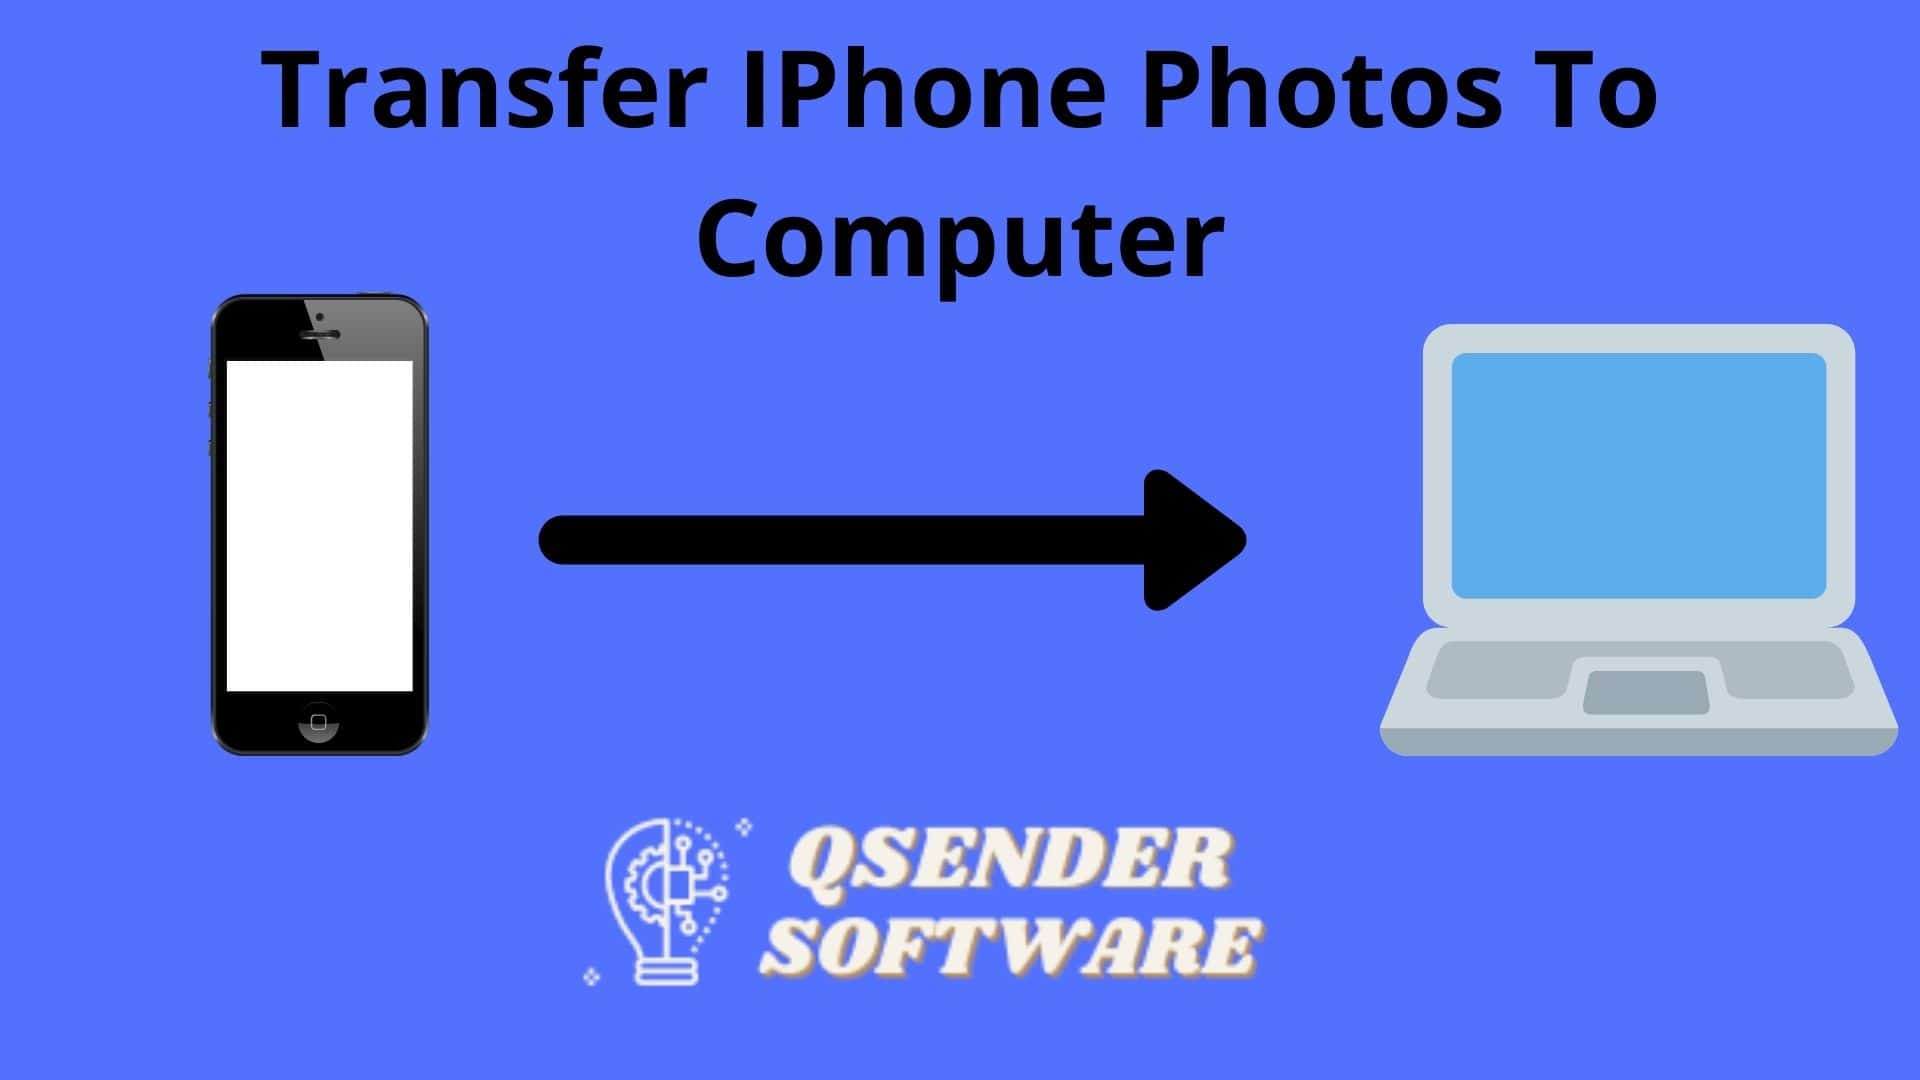 transfer iPhone photos to Computer